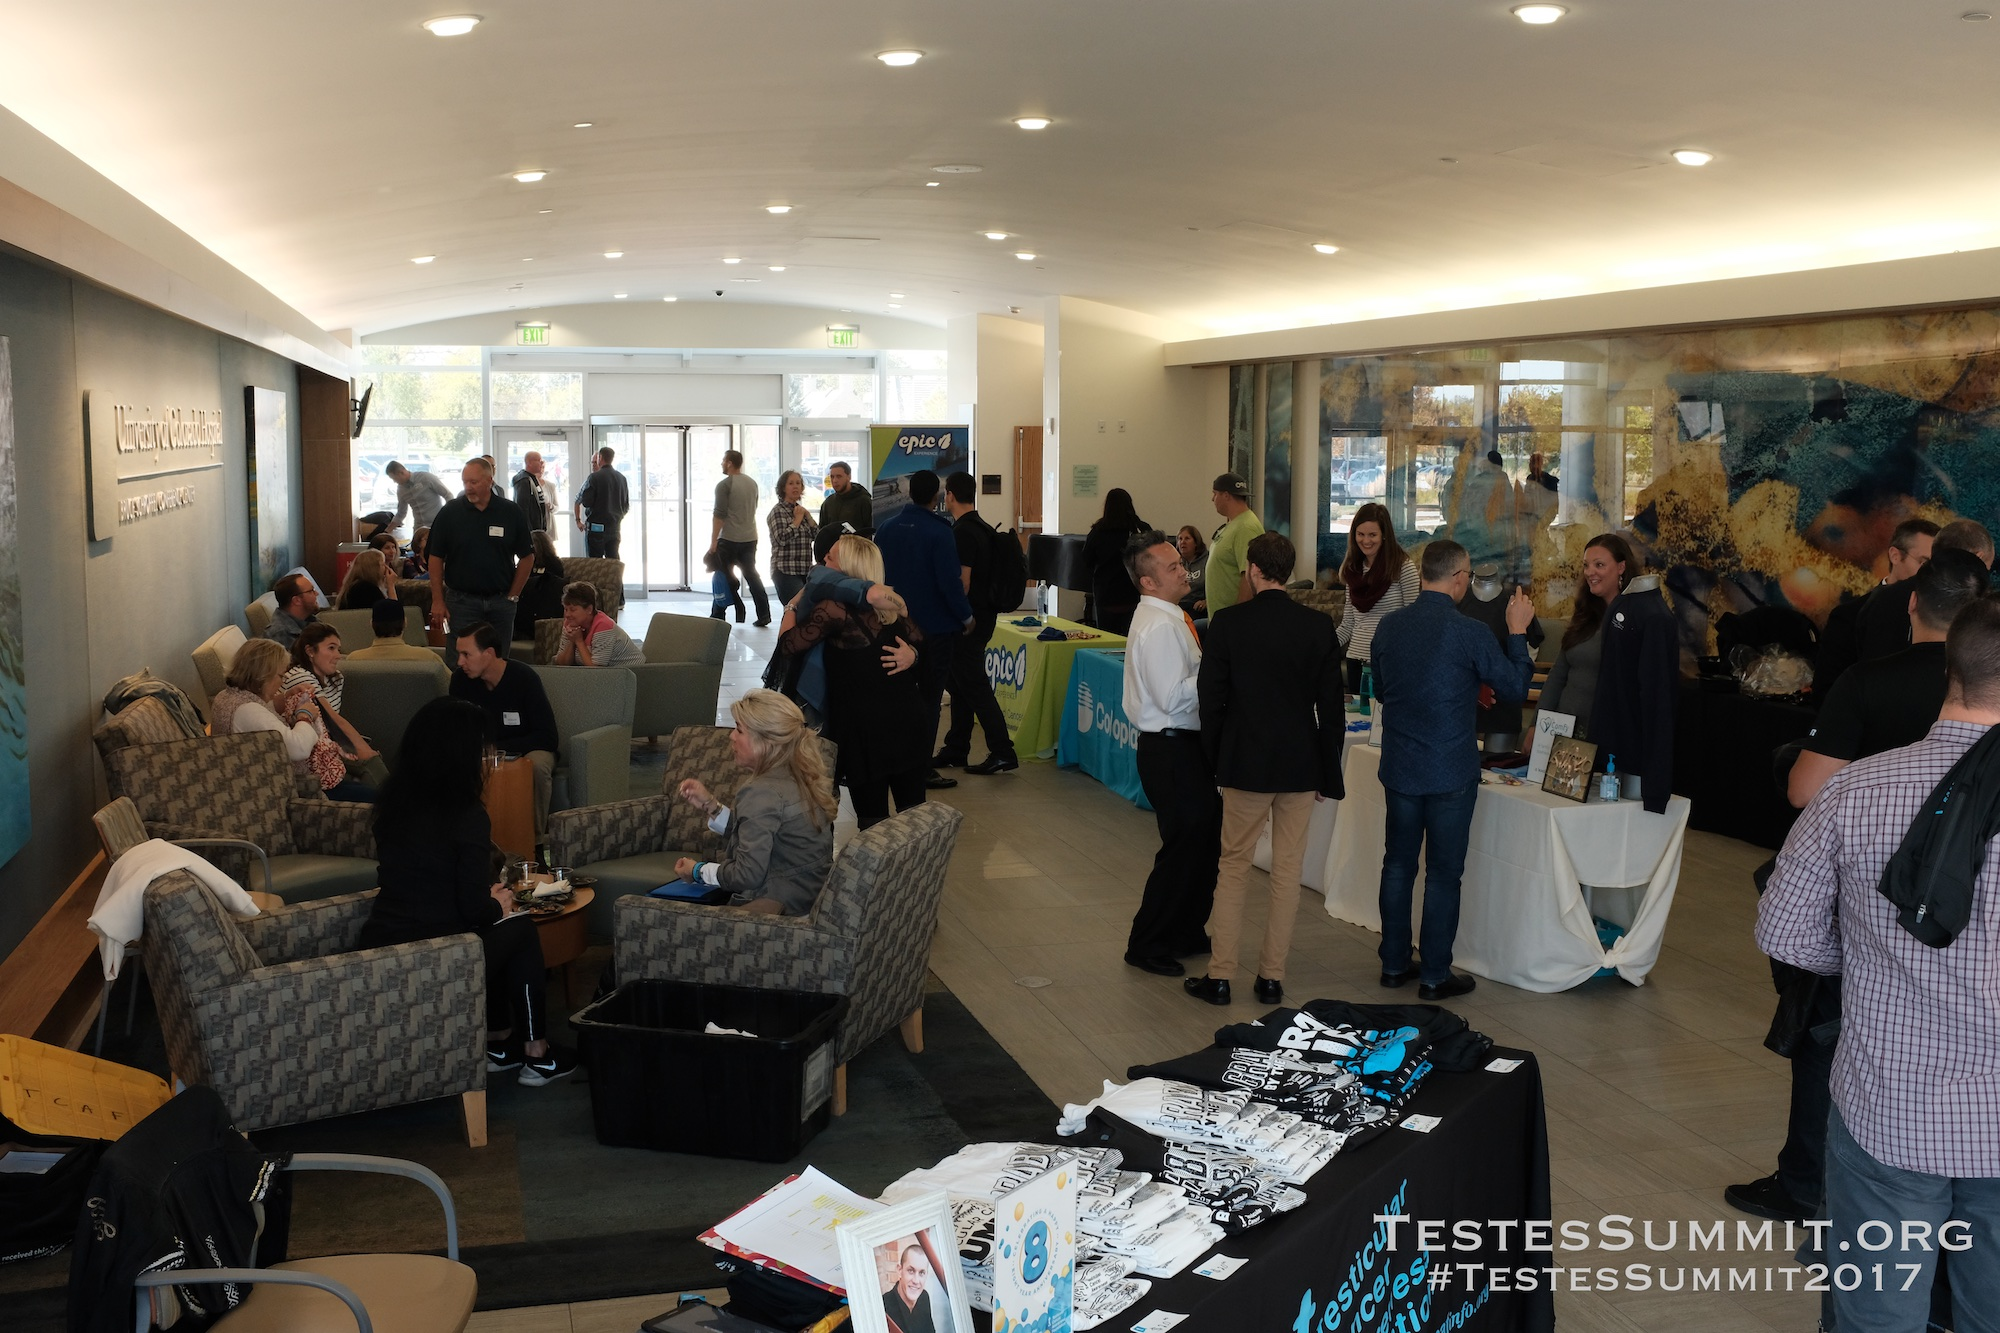 TestesSummit2017-179_DSCF5762-HD-WM.jpg